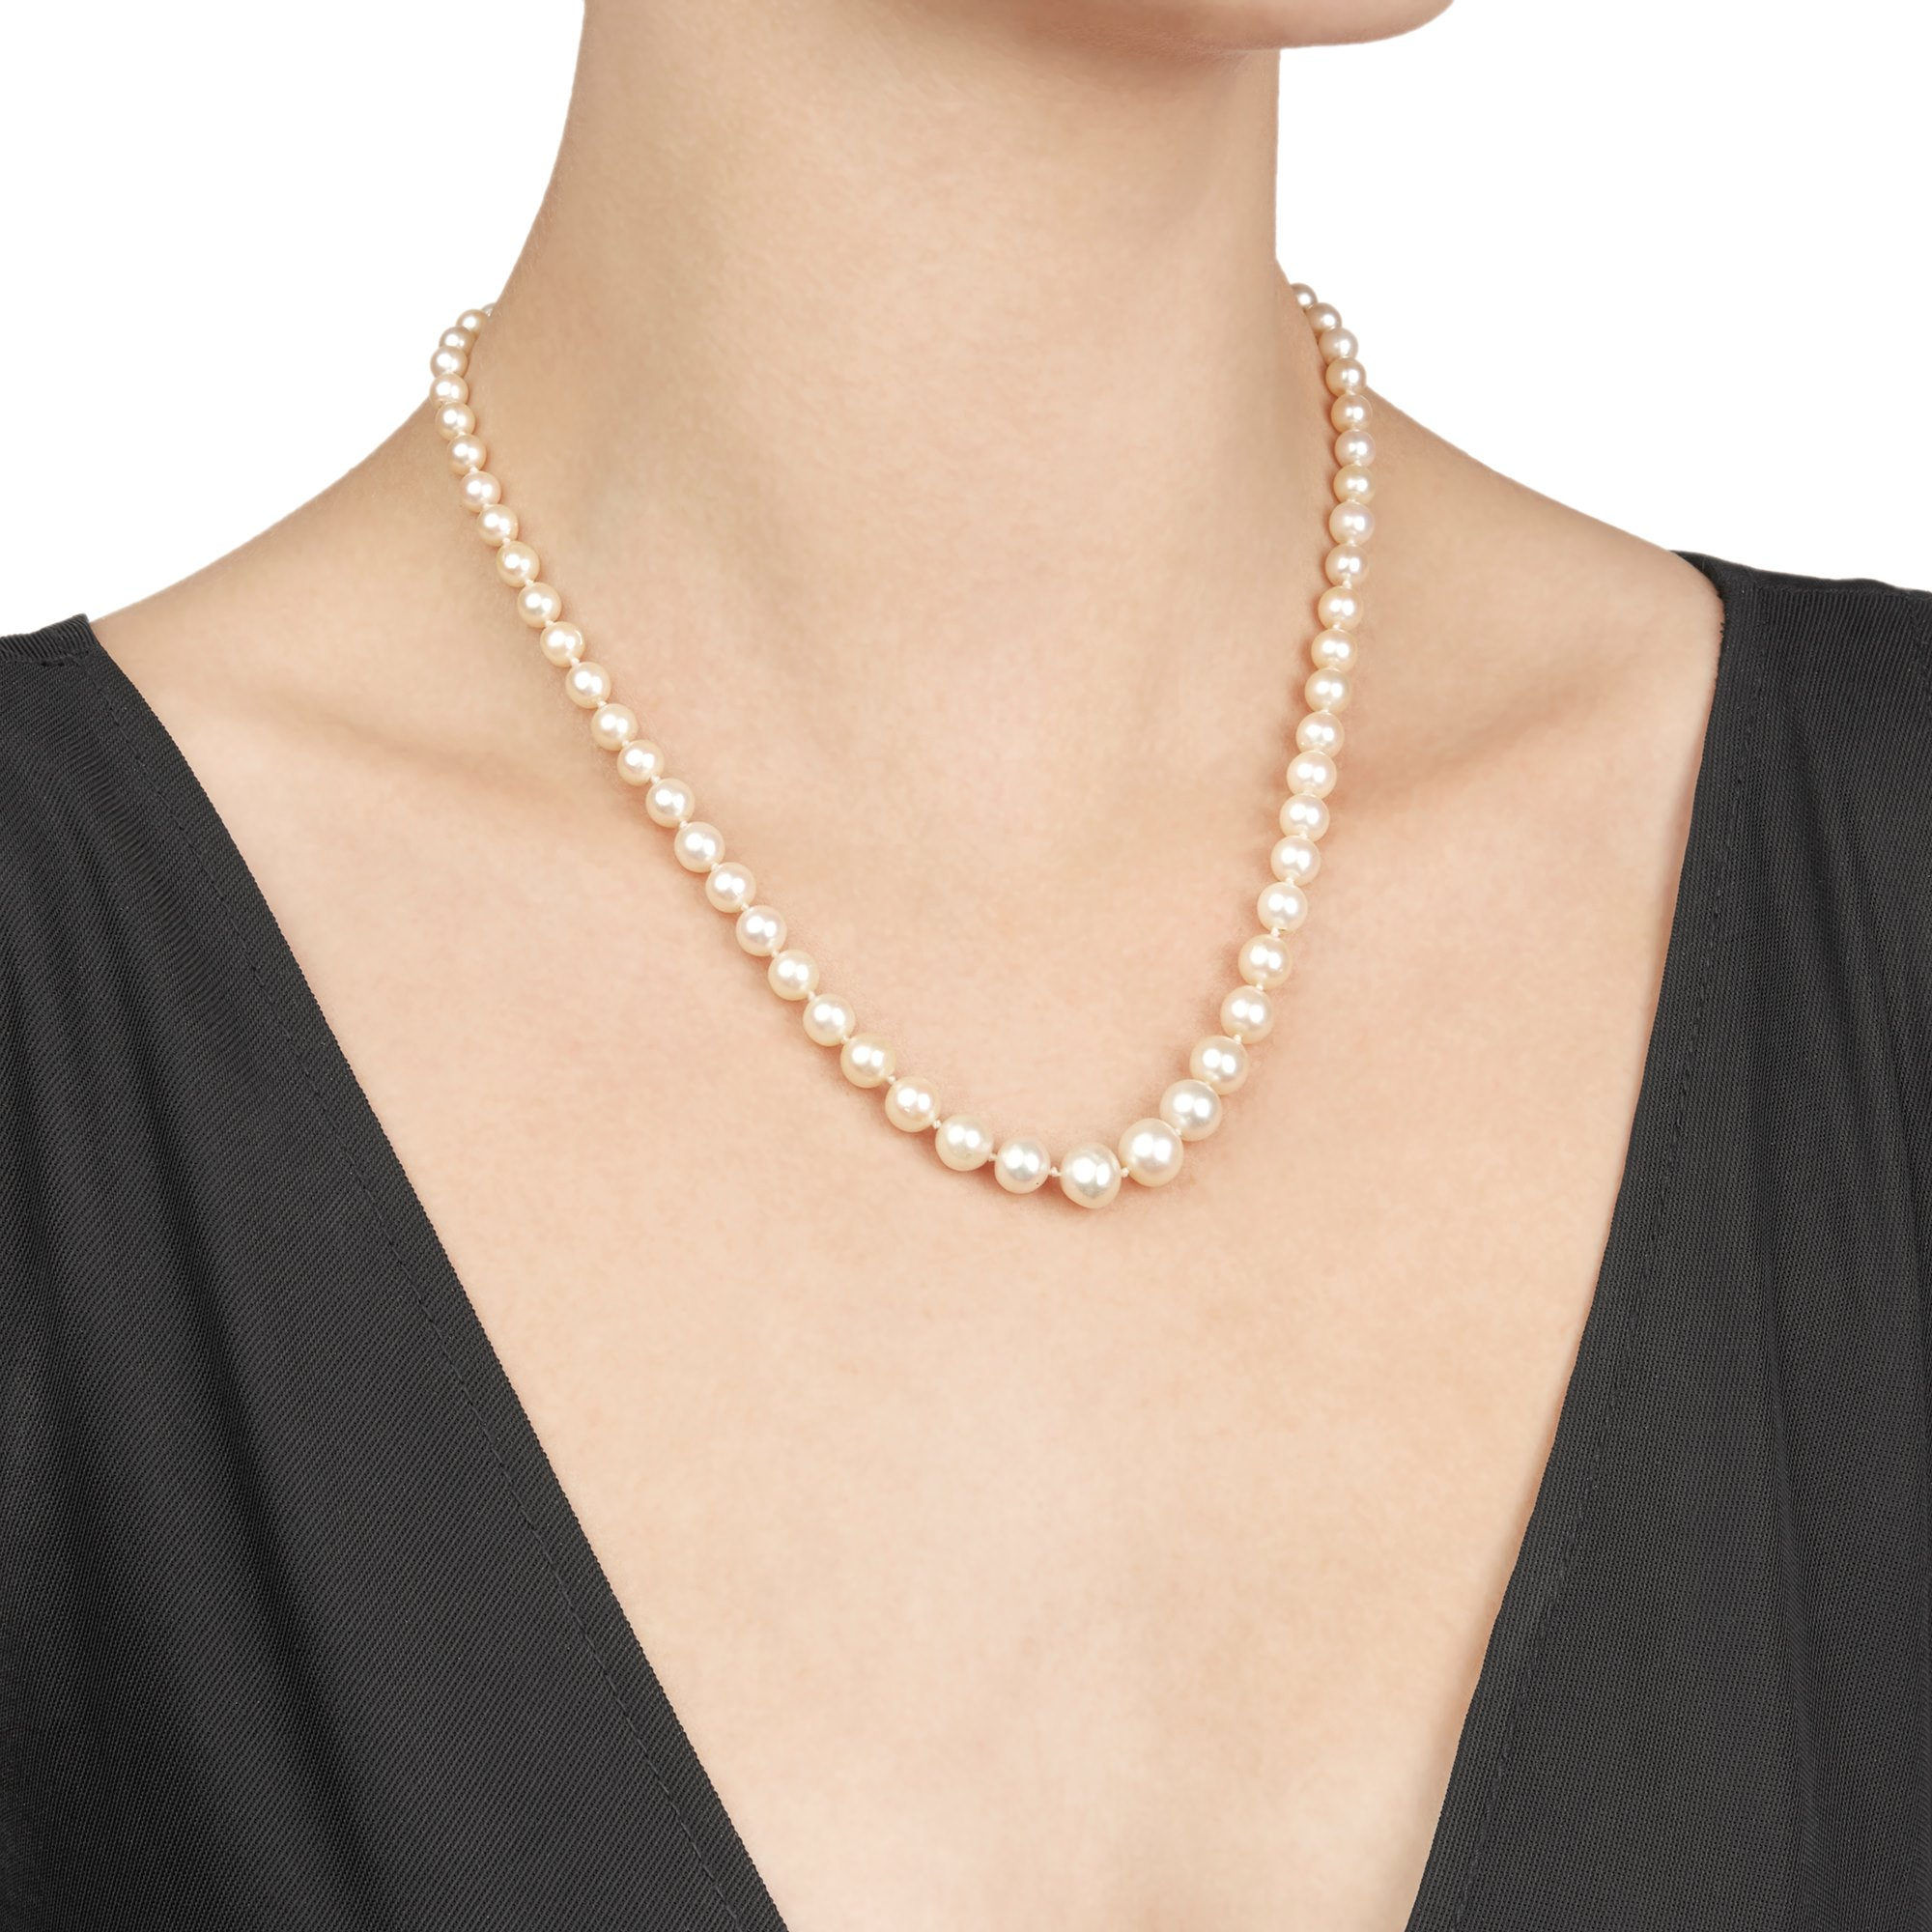 Boucheron 18k White Gold Vintage Pearl & Diamond Necklace